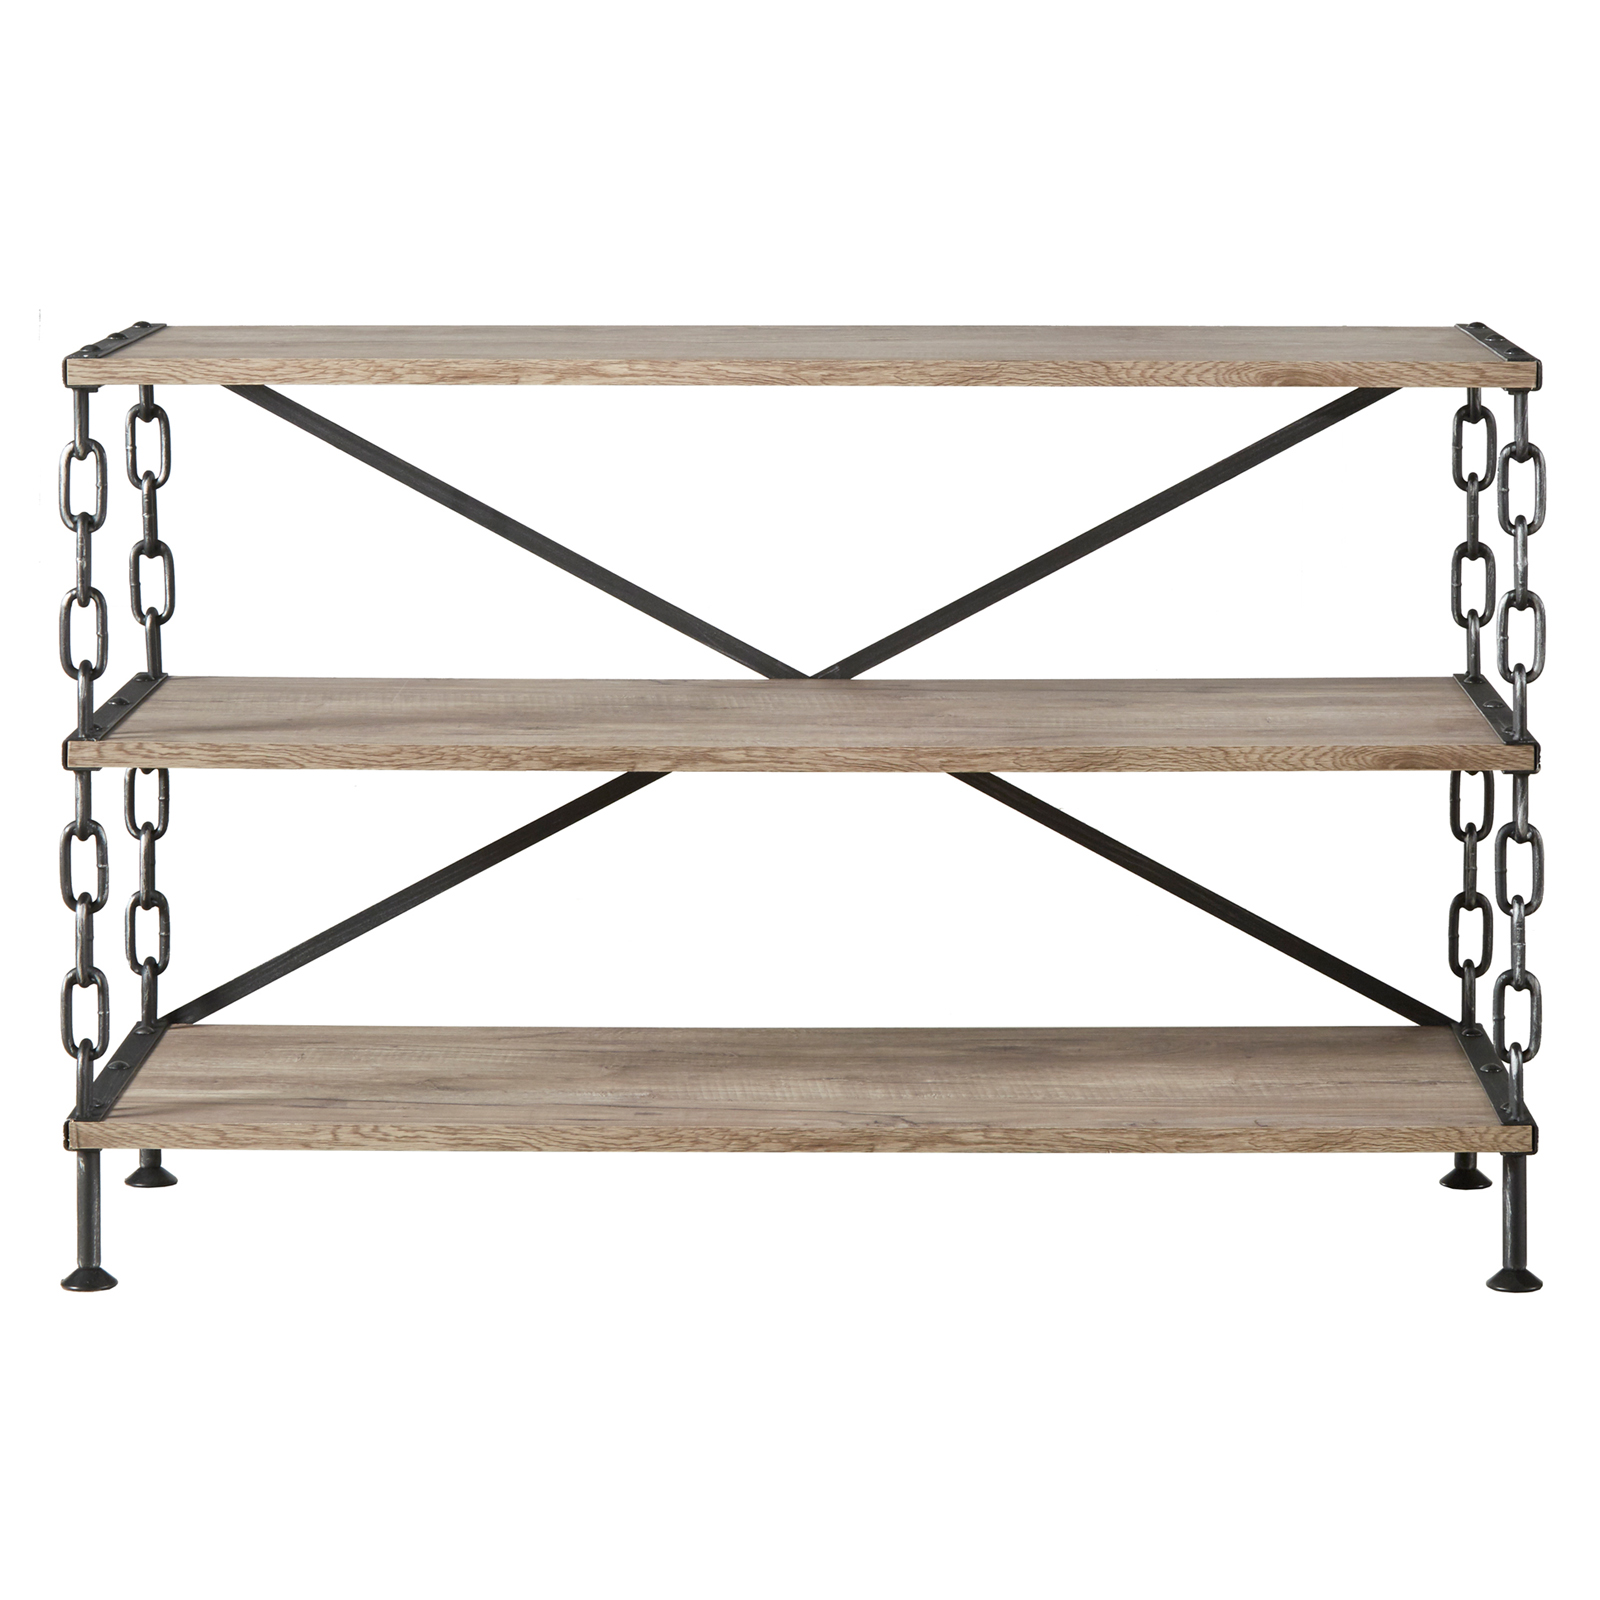 Homelegance chain link support sofa table tv stand